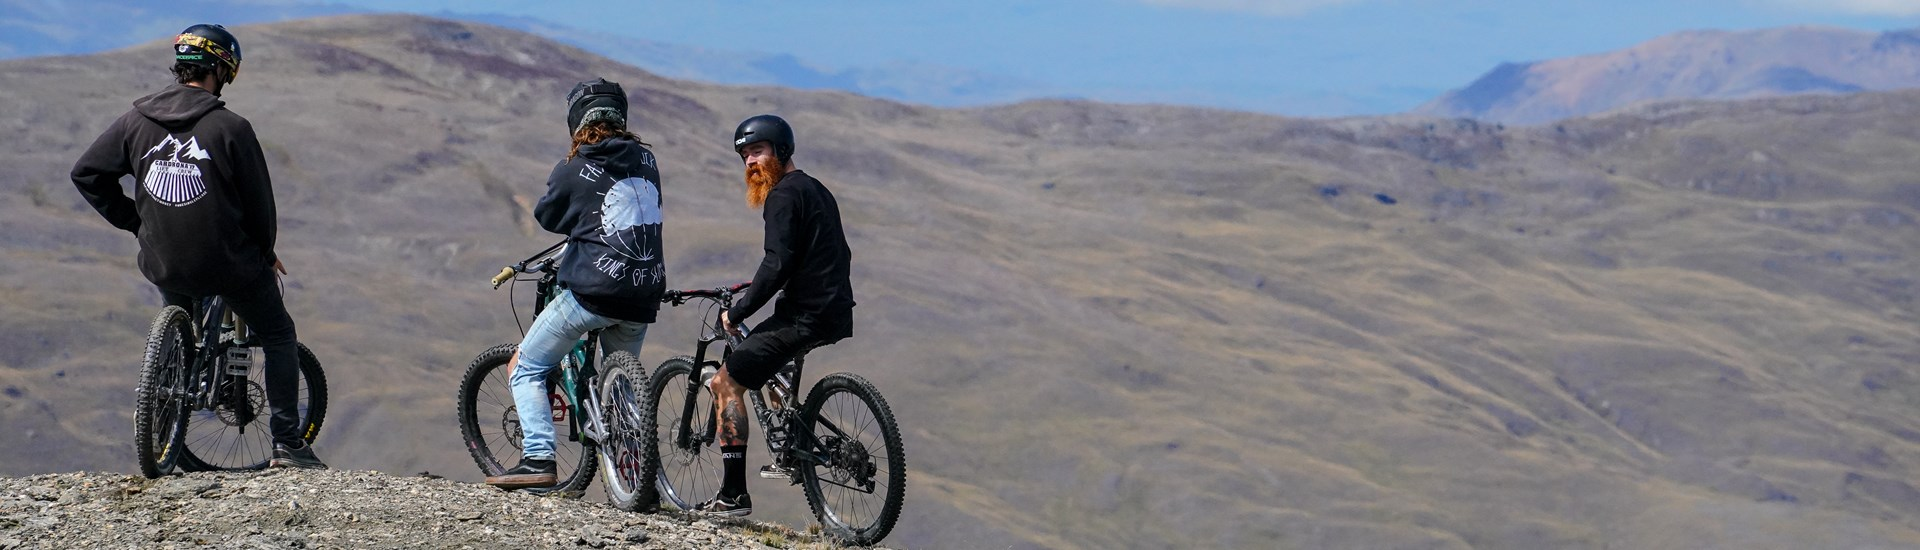 cardrona mountain bike park bikers TGIF